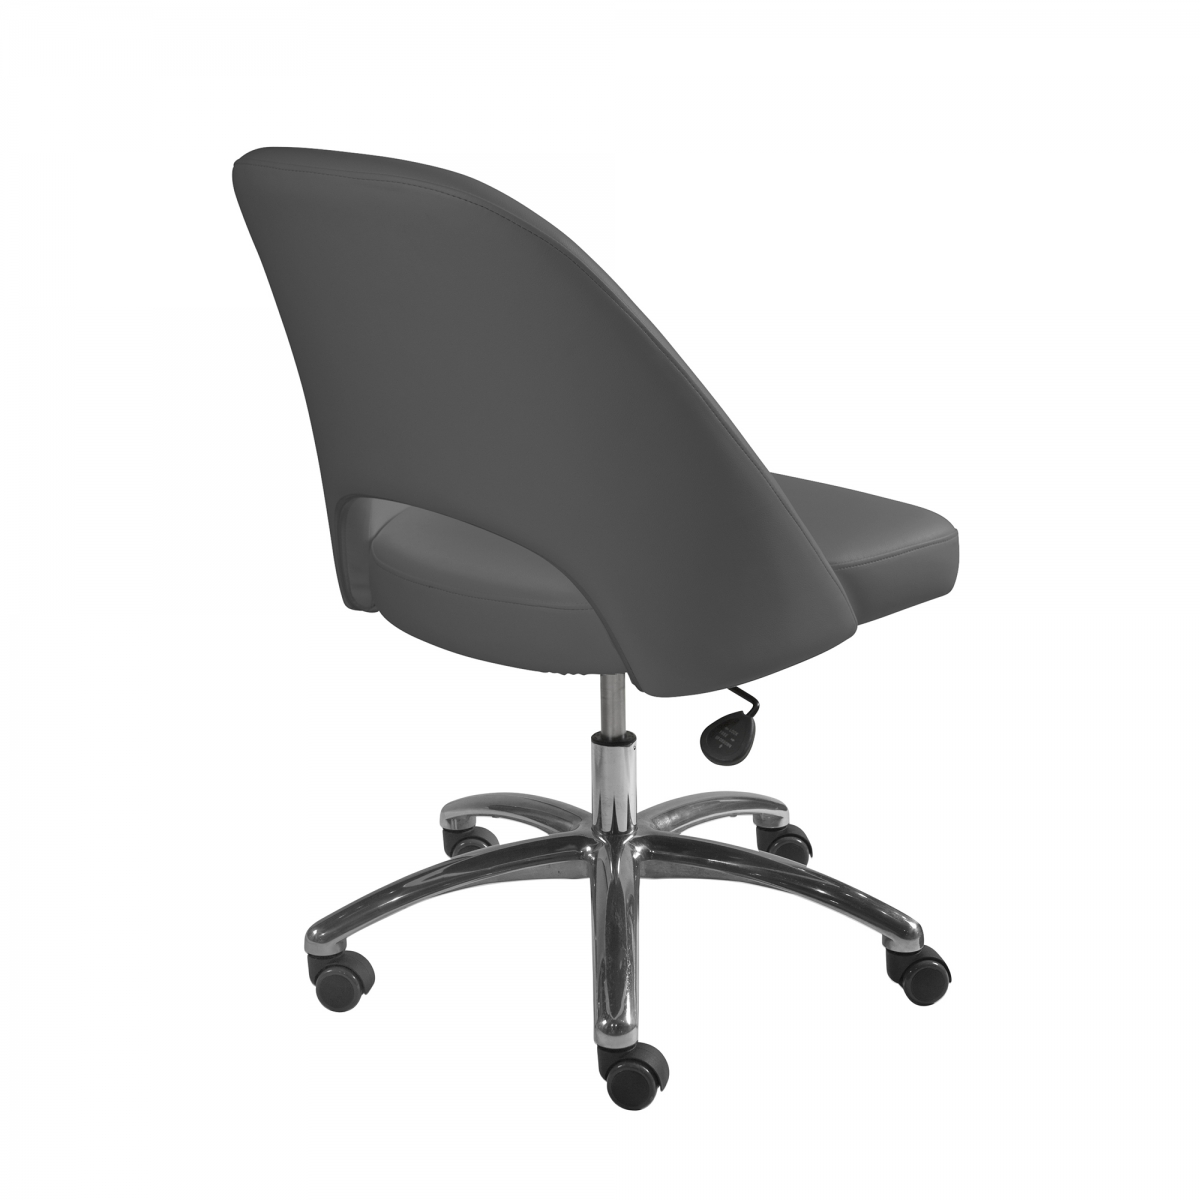 Teauge Low-Back Office Chair